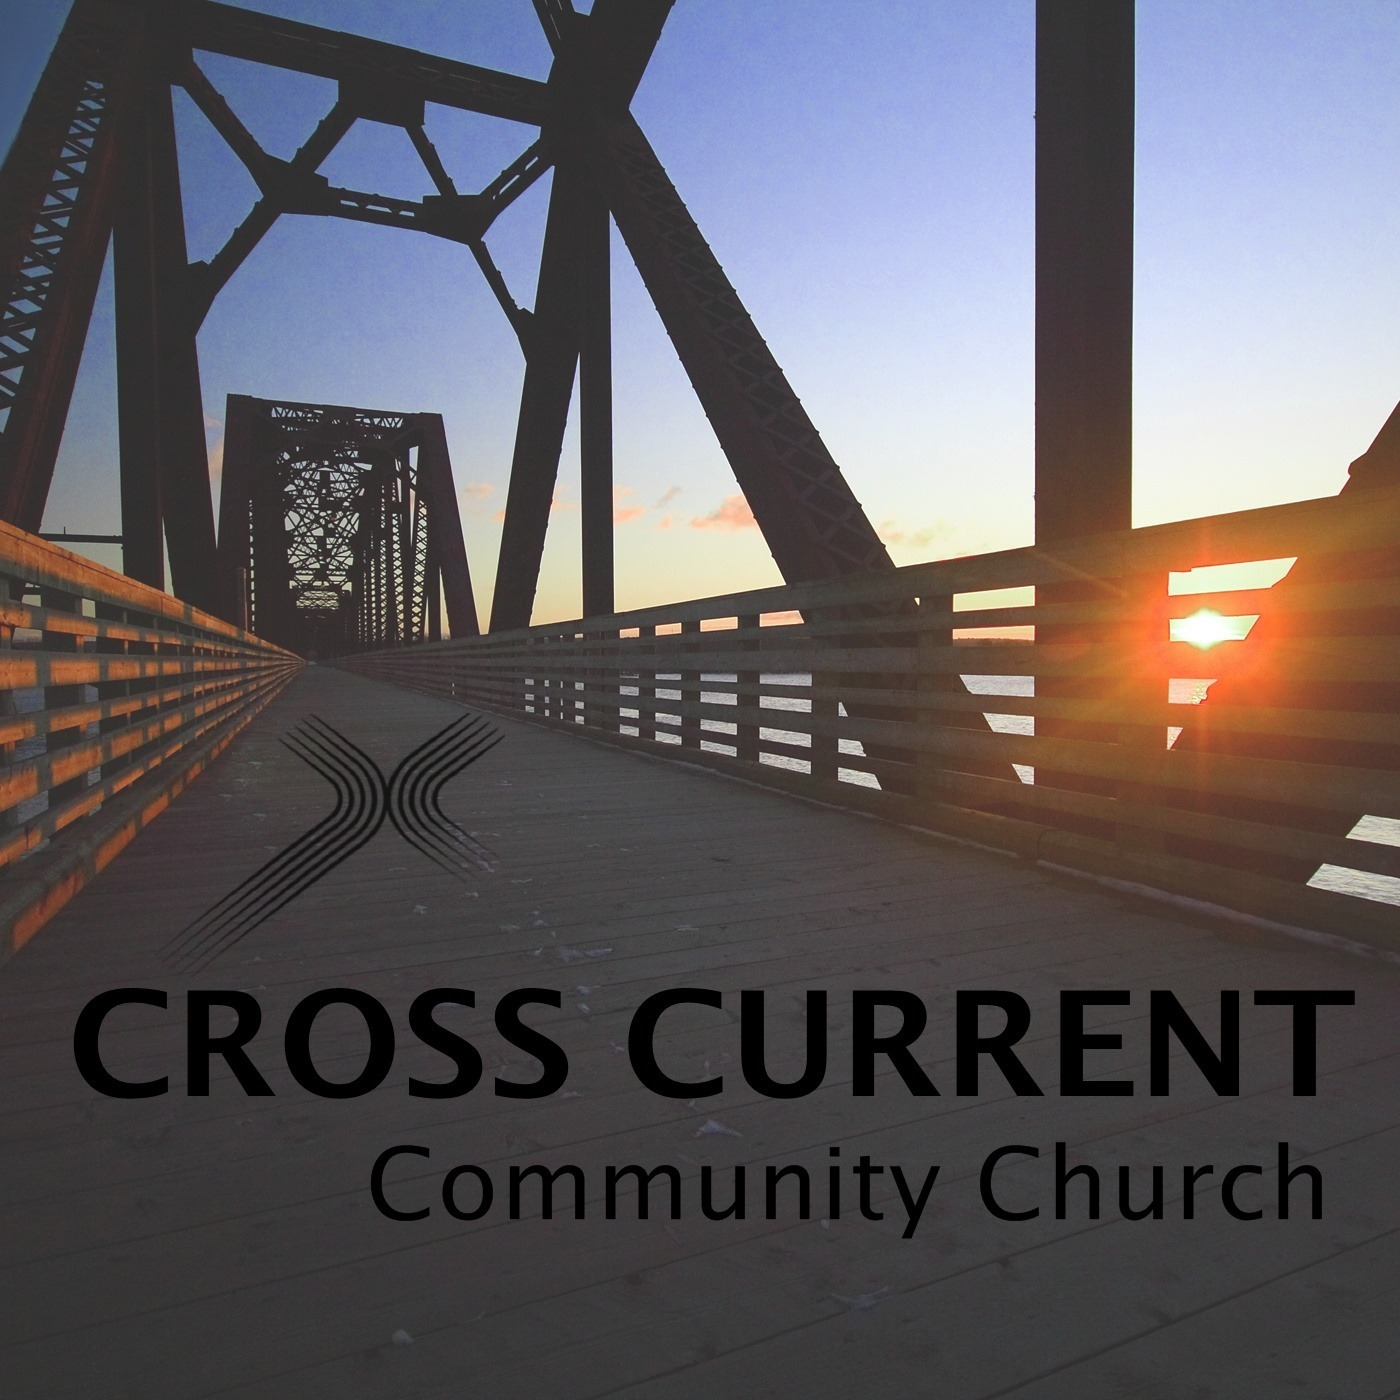 Cross Current Community Church